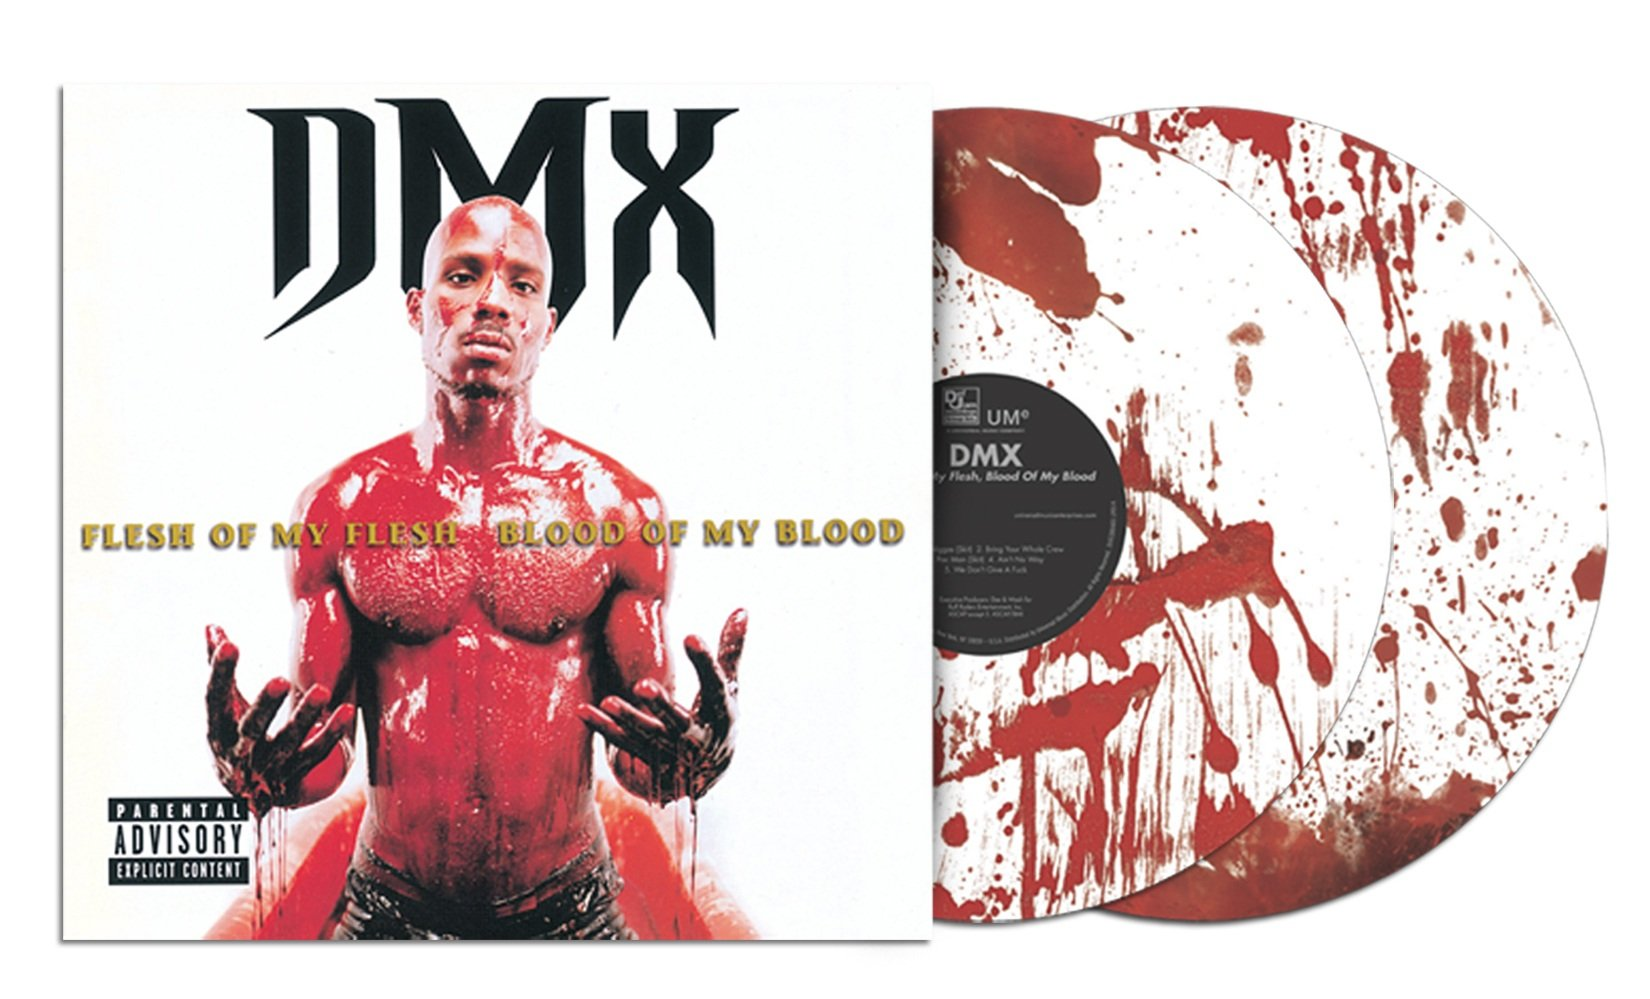 Flesh of My Flesh, Blood of My Blood by Def Jam